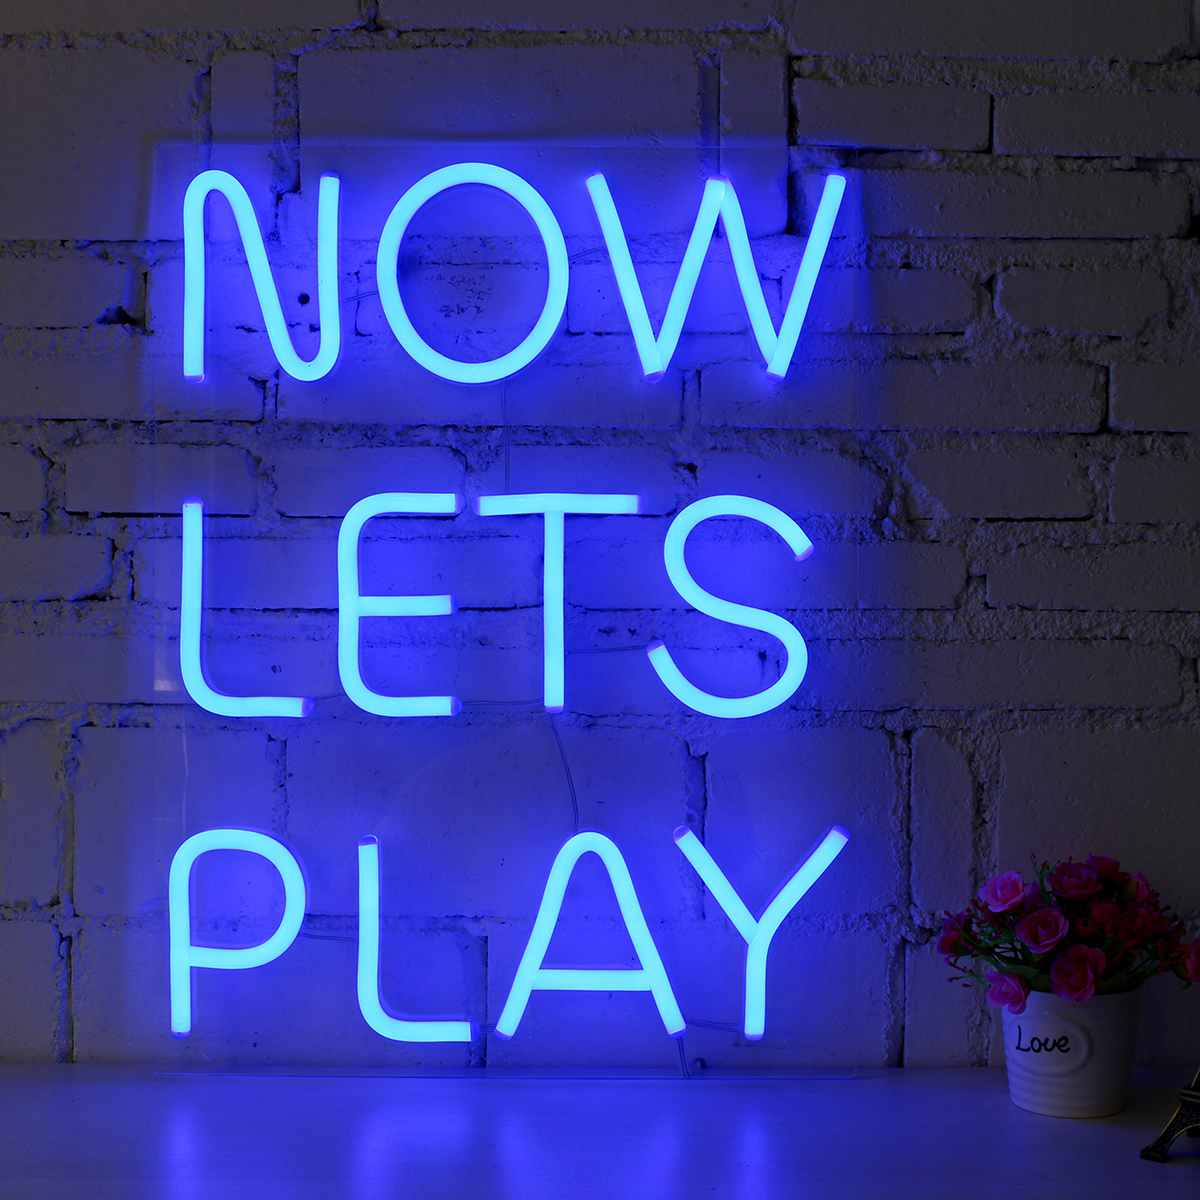 NOW LETS PLAY LED Neon Sign Tube Light Visual Artwork Bar Pub Club Wall Hanging Bar Party Decoration Lighting image